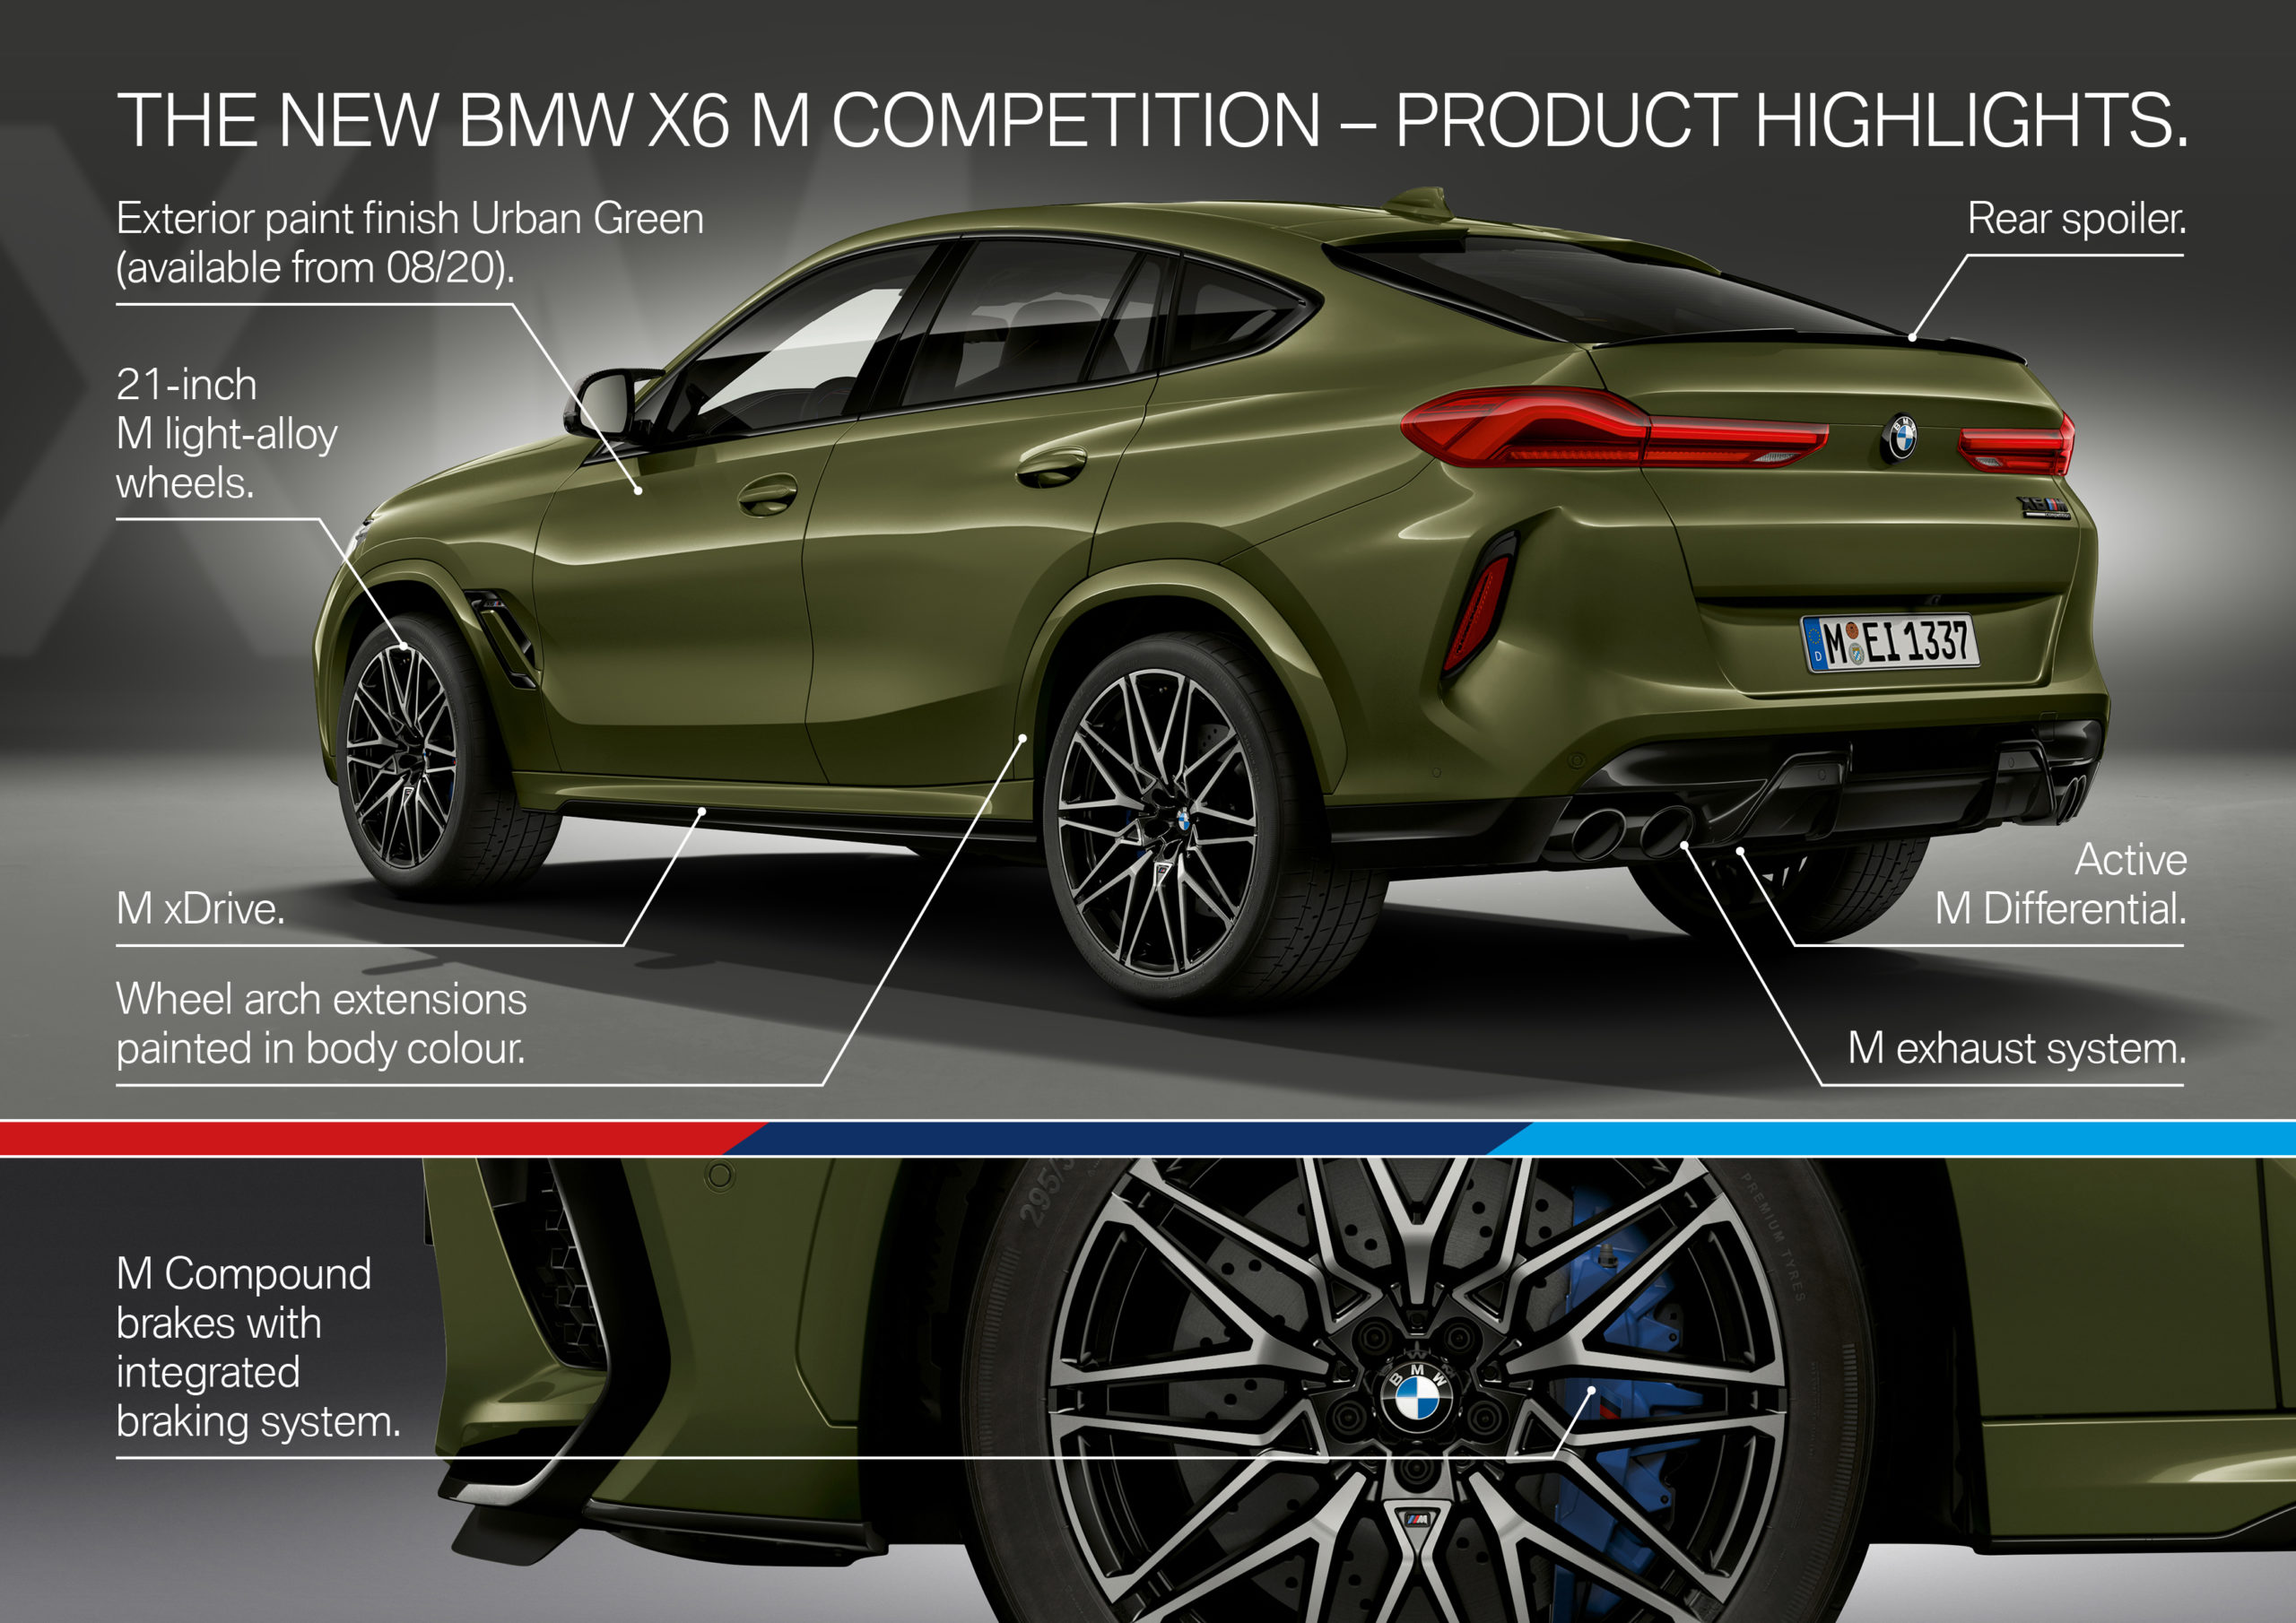 The new BMW X6 M - Highlights